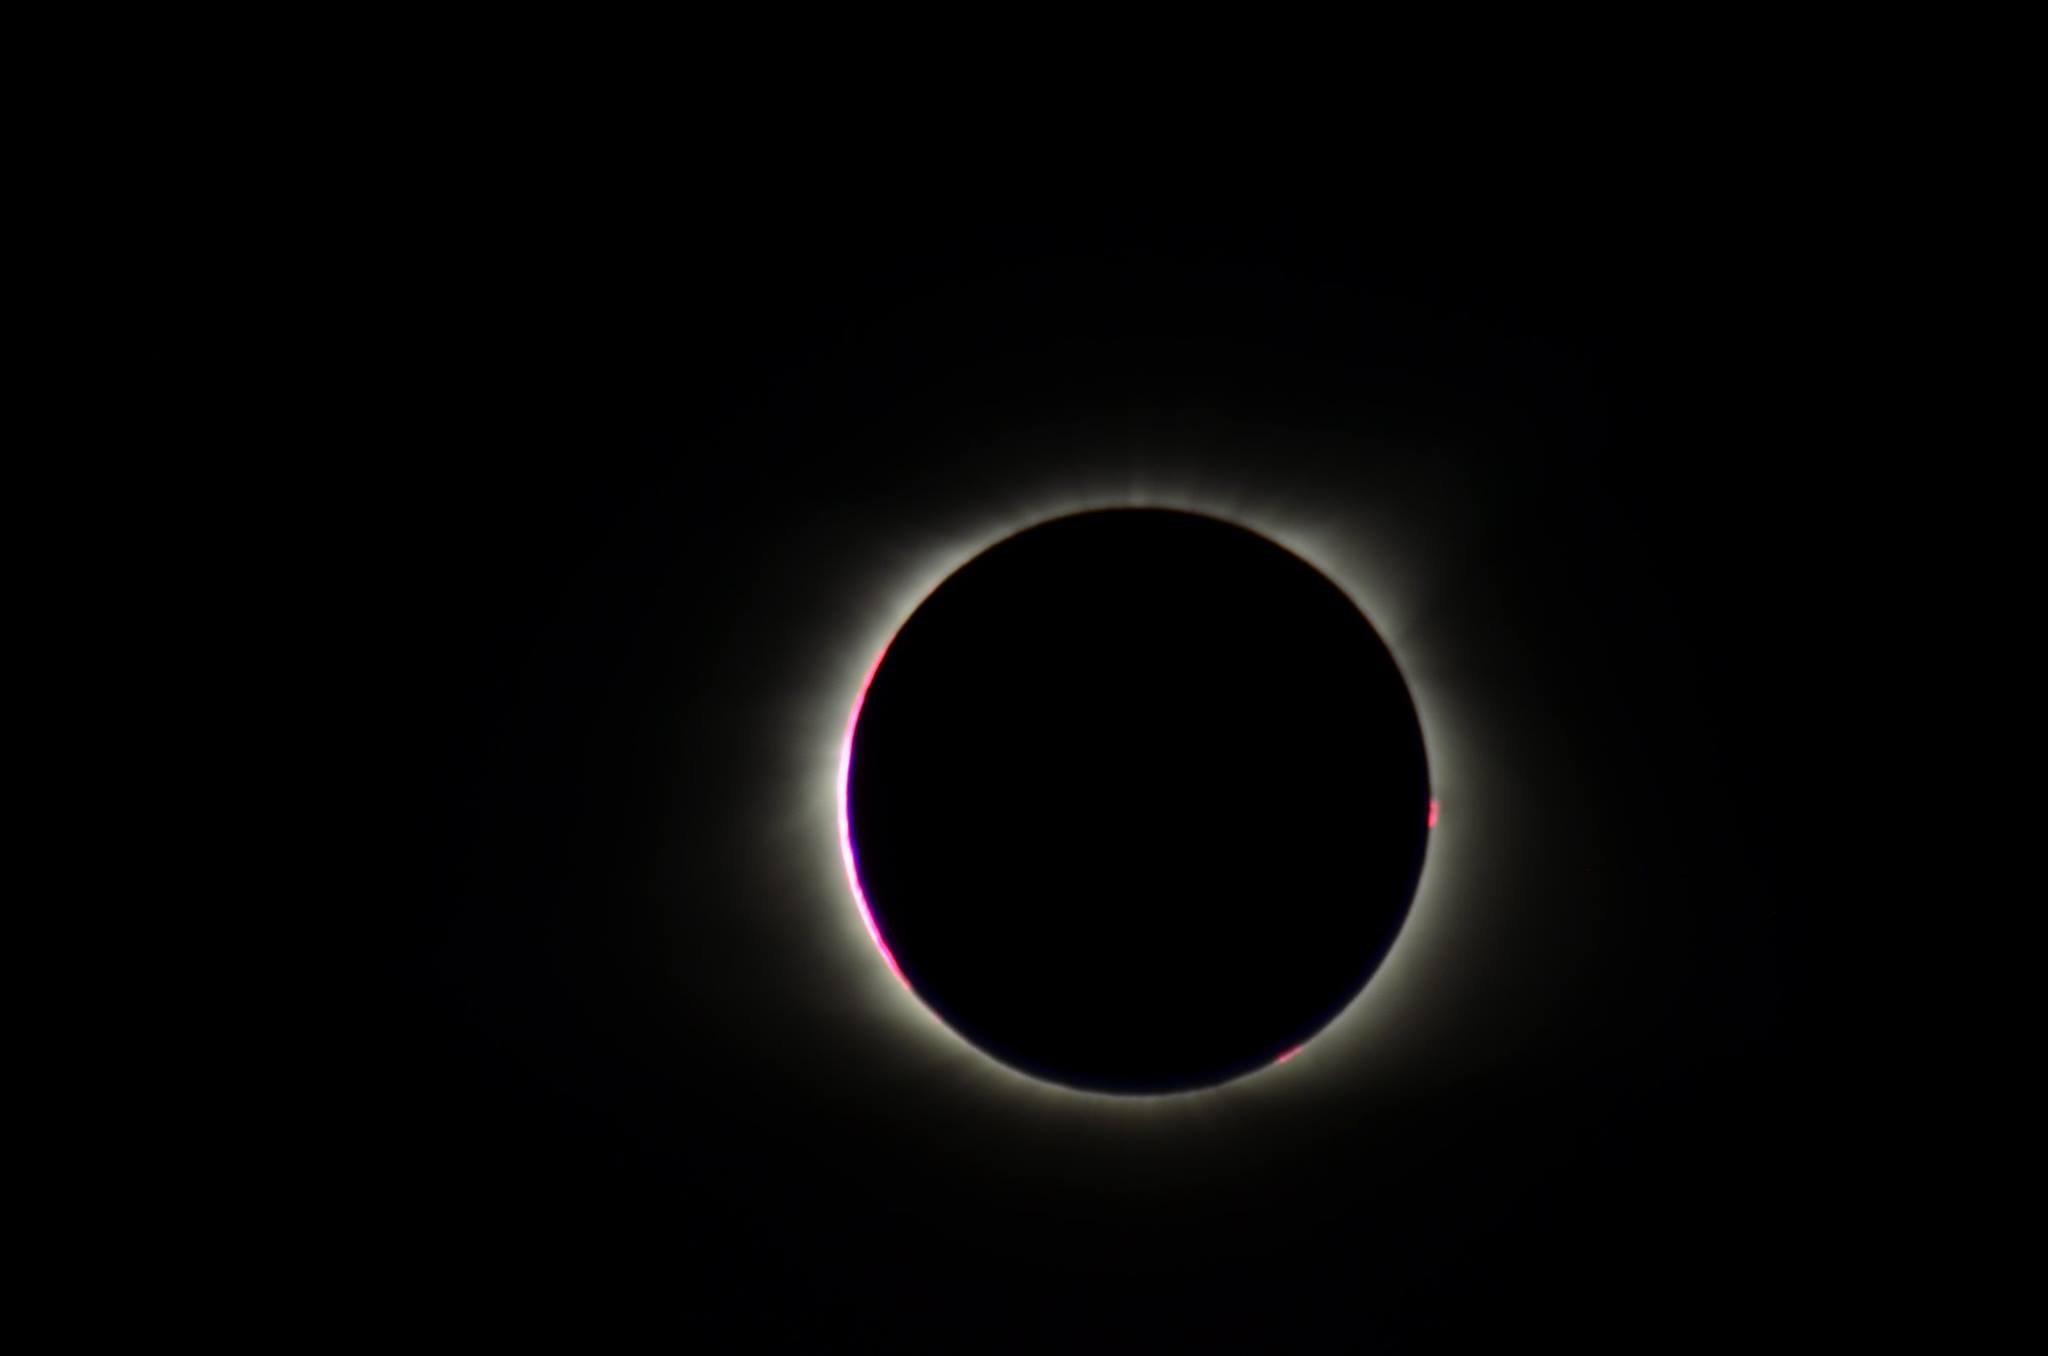 2017.eclipse.clemson.totality.jpg